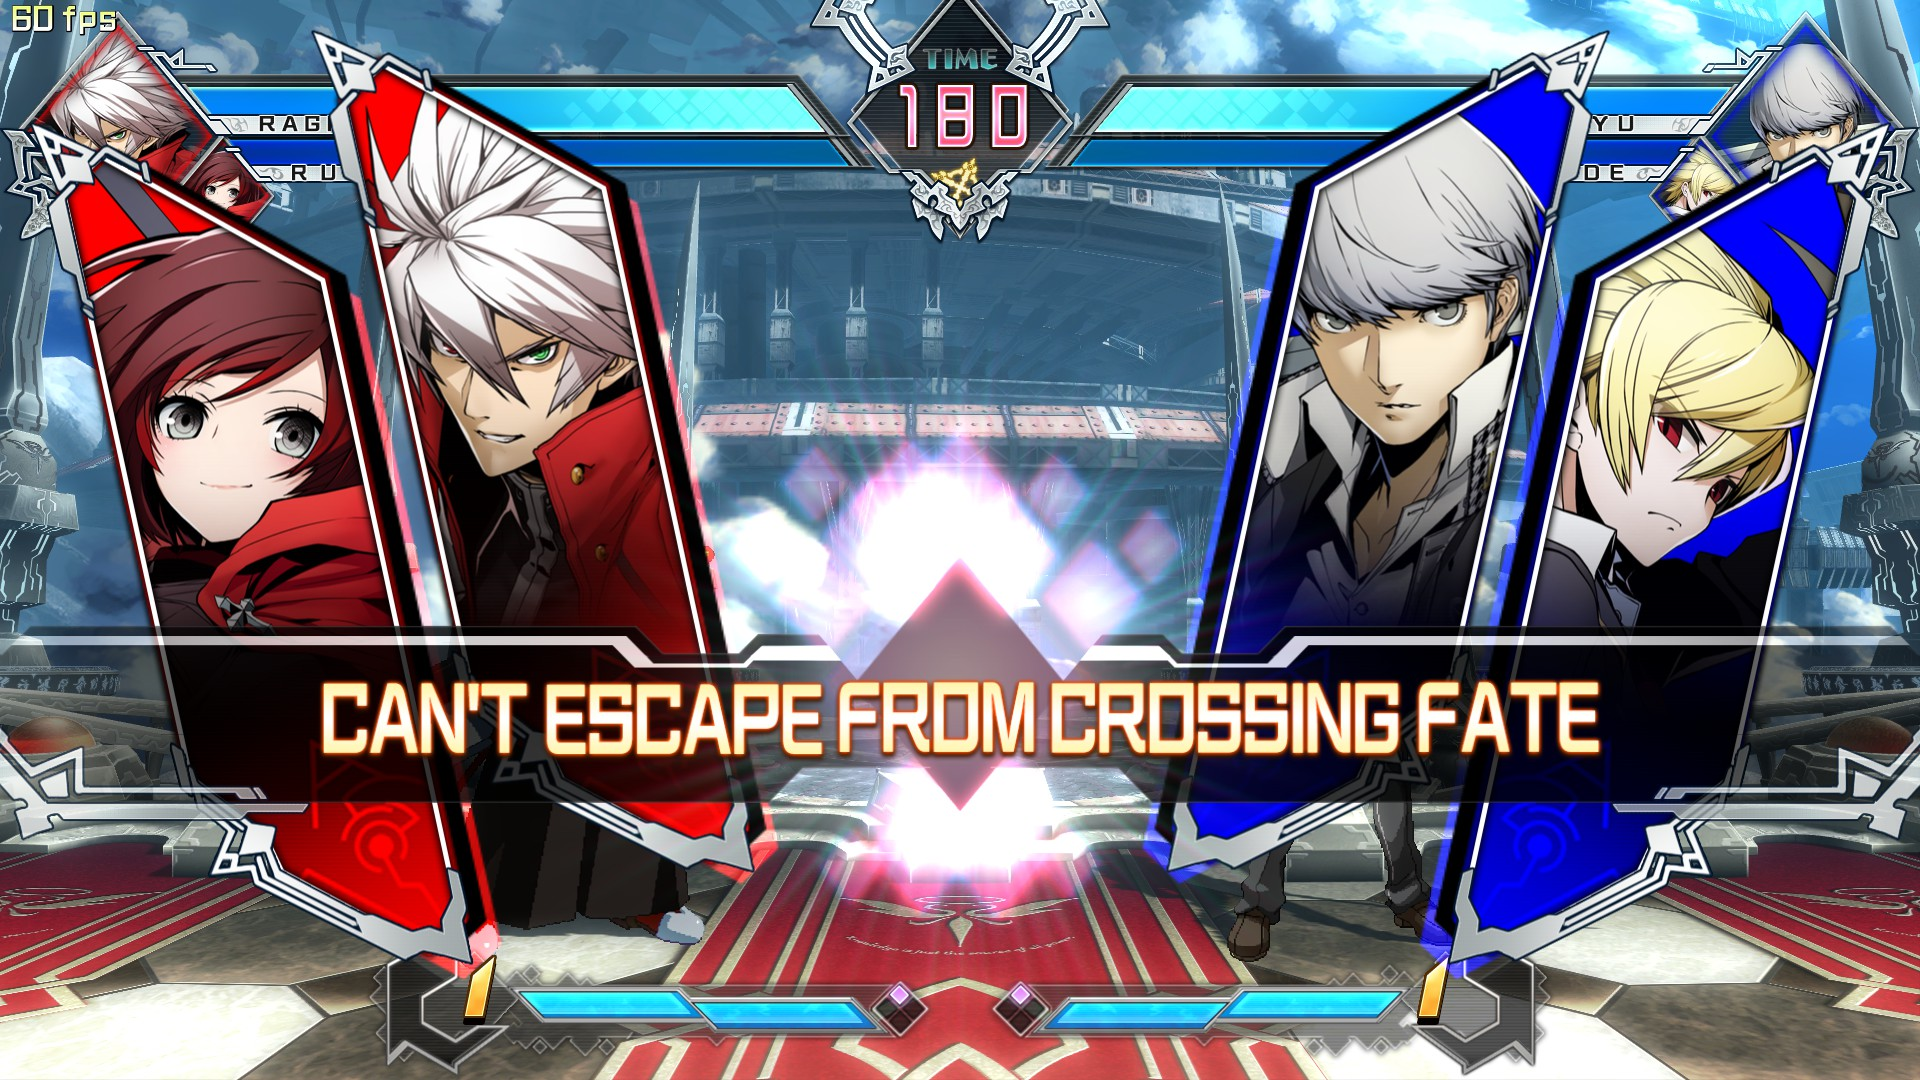 Blazblue Cross Tag Battle On Steam Smie 7 Pin Trailer Connector Wiring Diagram For